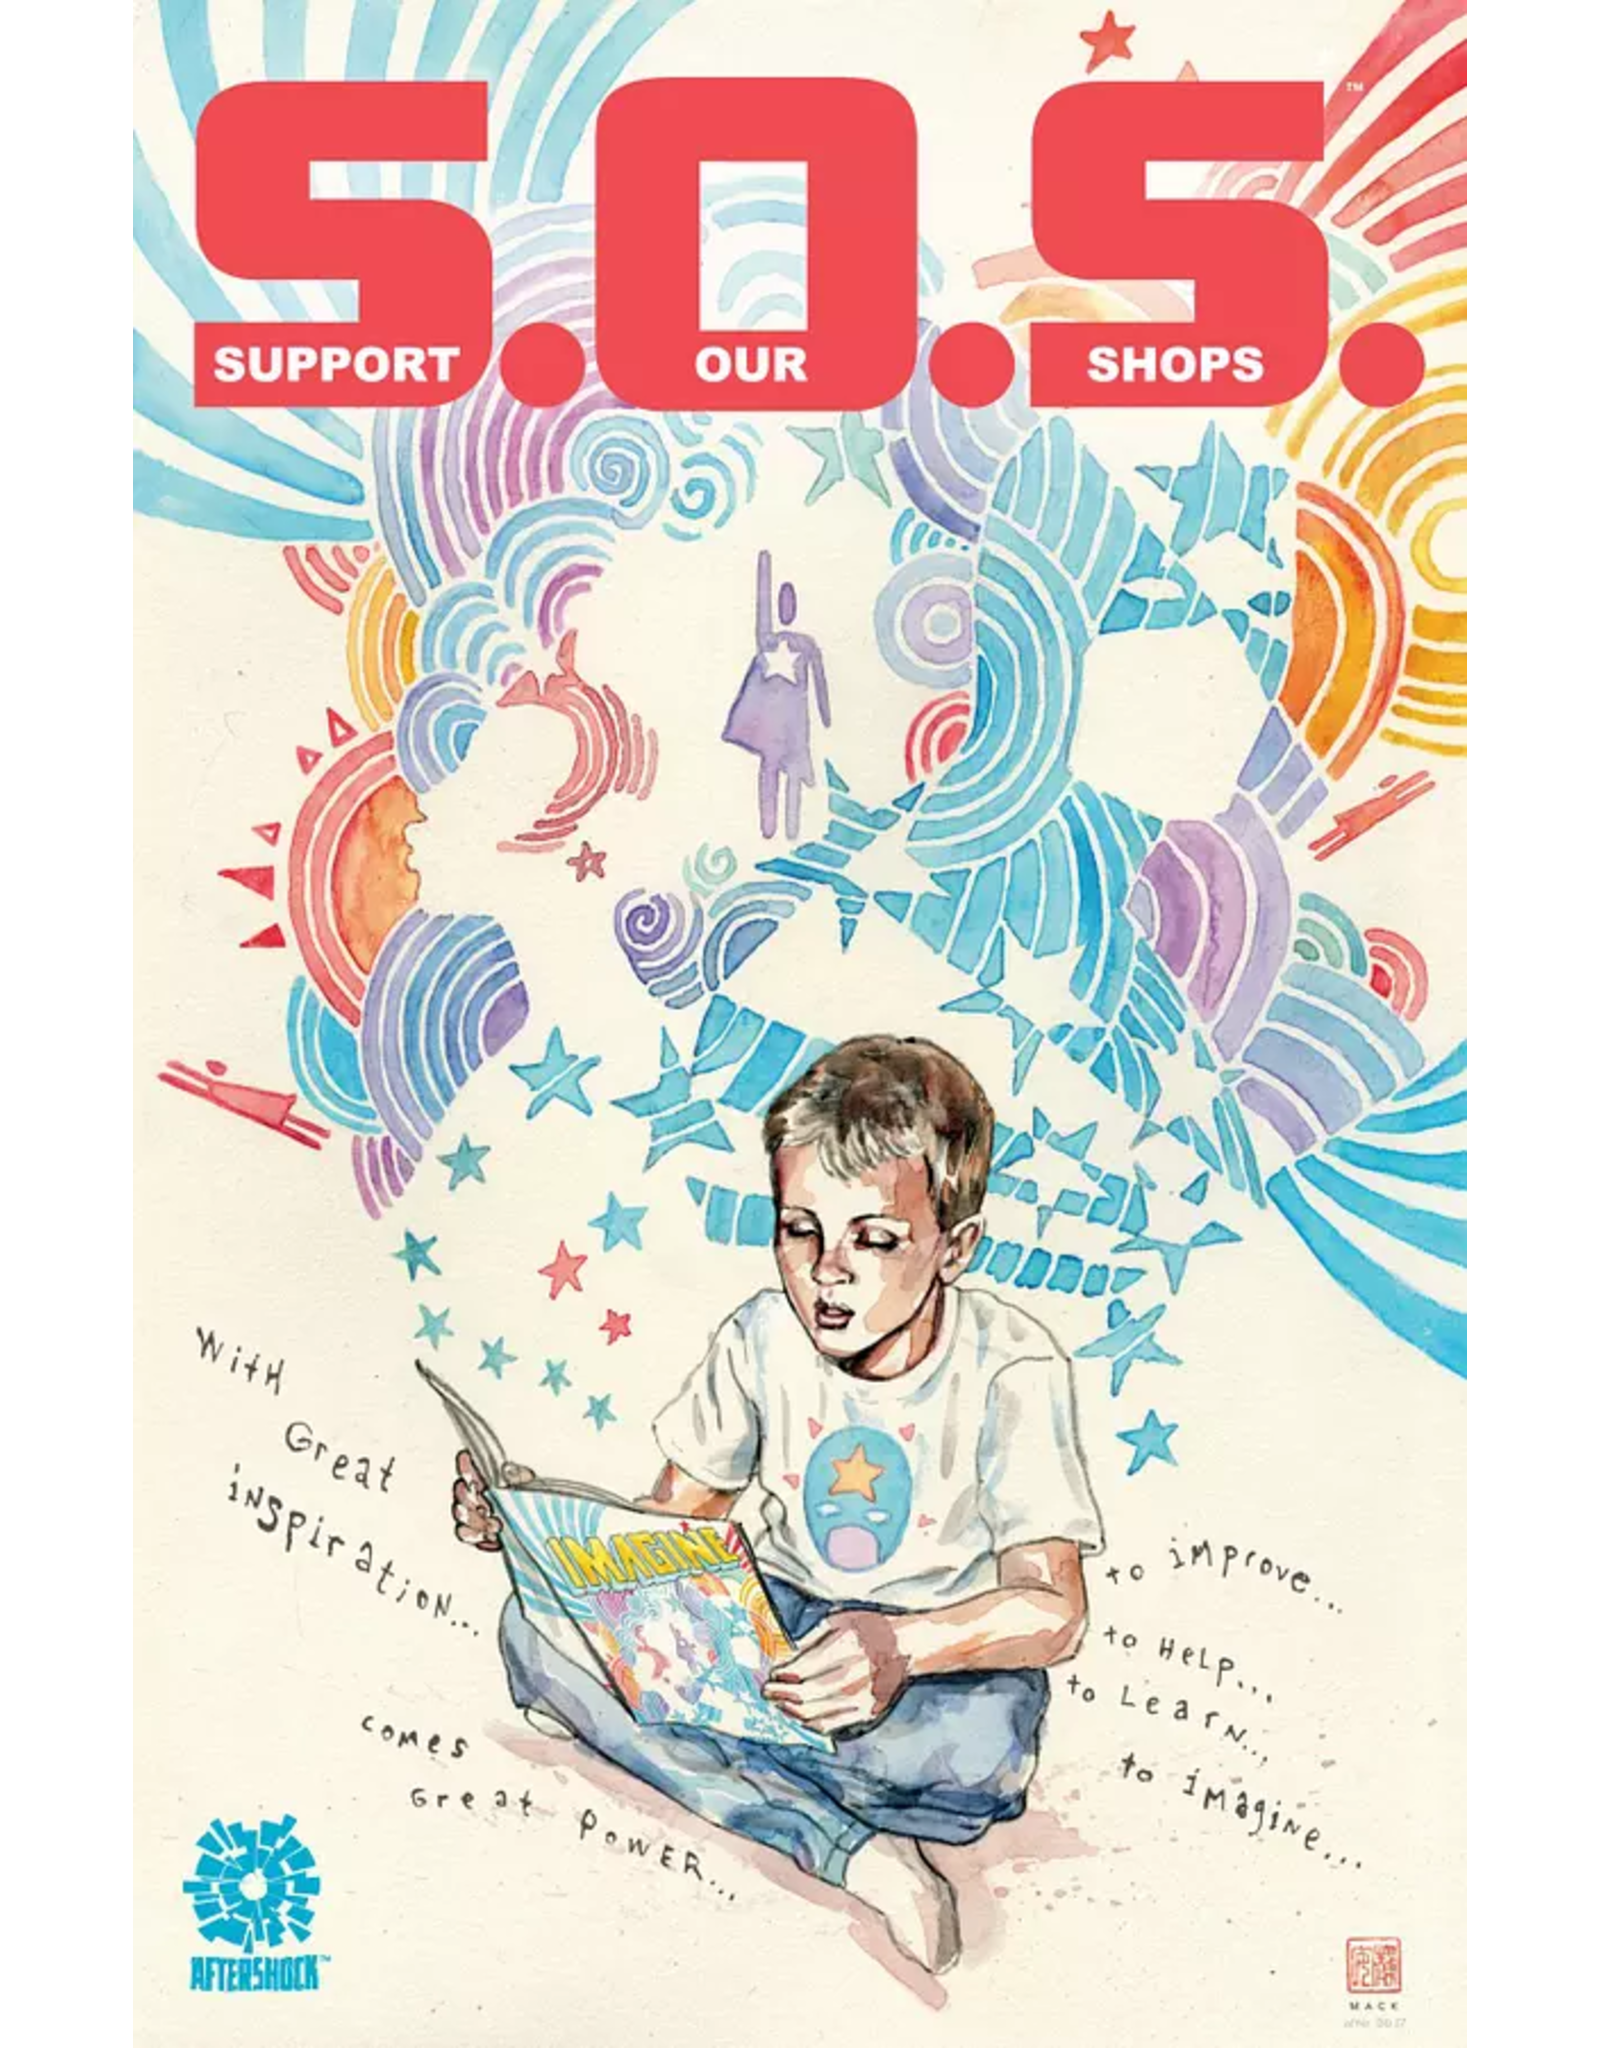 AFTERSHOCK COMICS S.O.S. (SUPPORT OUR SHOPS) BENEFIT COMIC